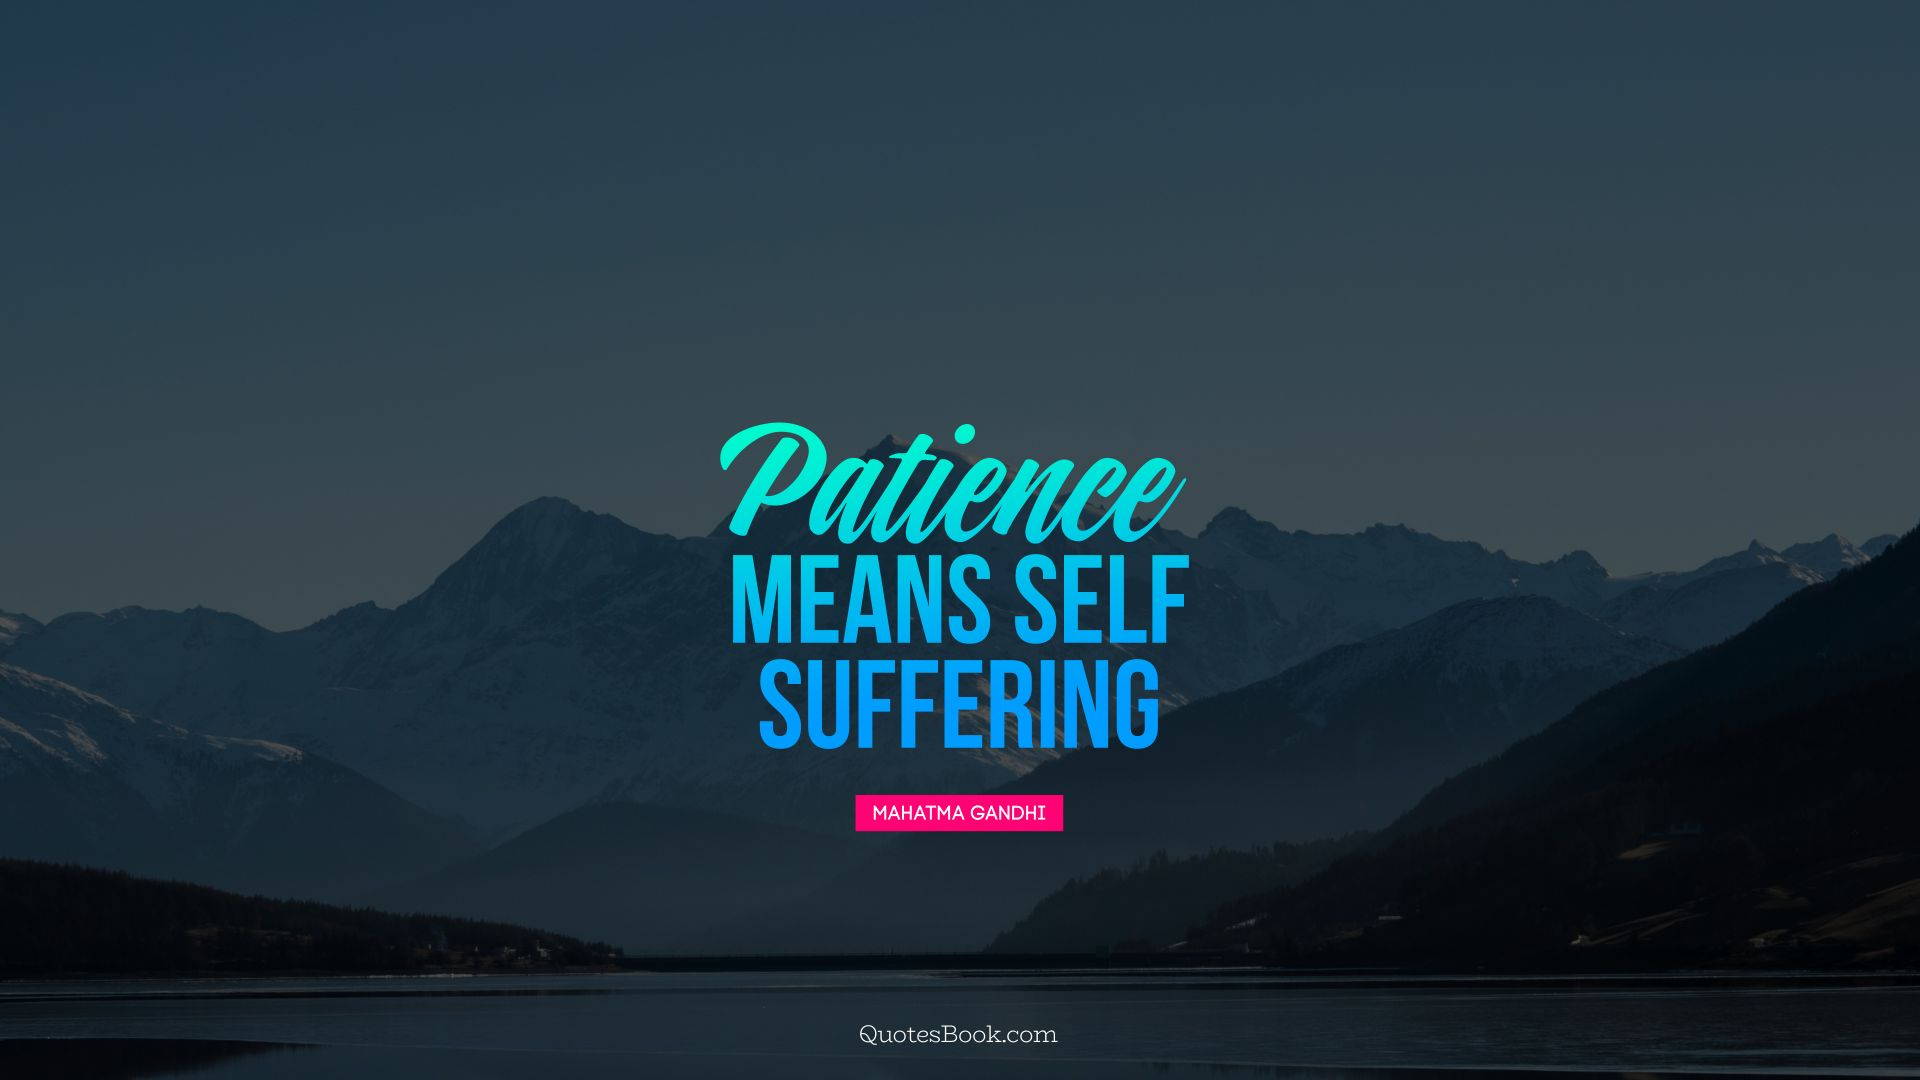 Patience means self-suffering. - Quote by Mahatma Gandhi